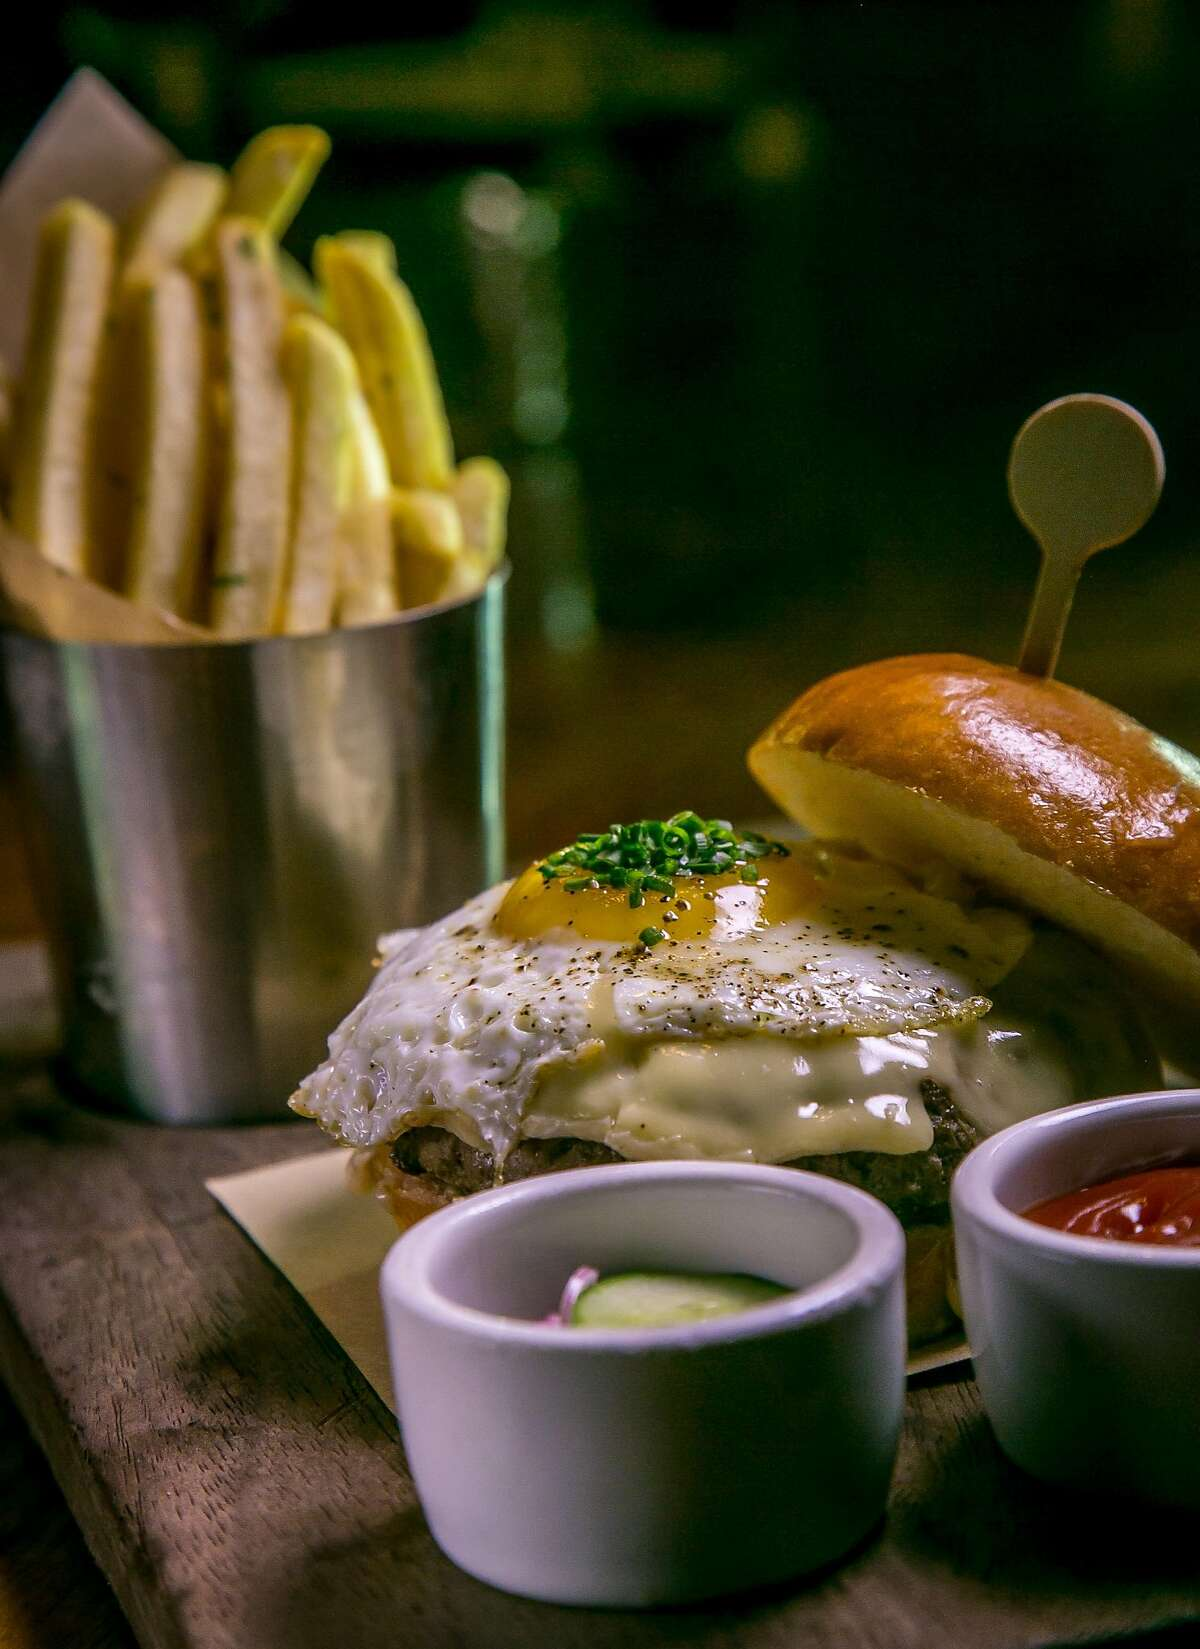 The Tavern Burger at Wayfare Tavern in San Francisco, Calif., is seen on March 20th, 2017.